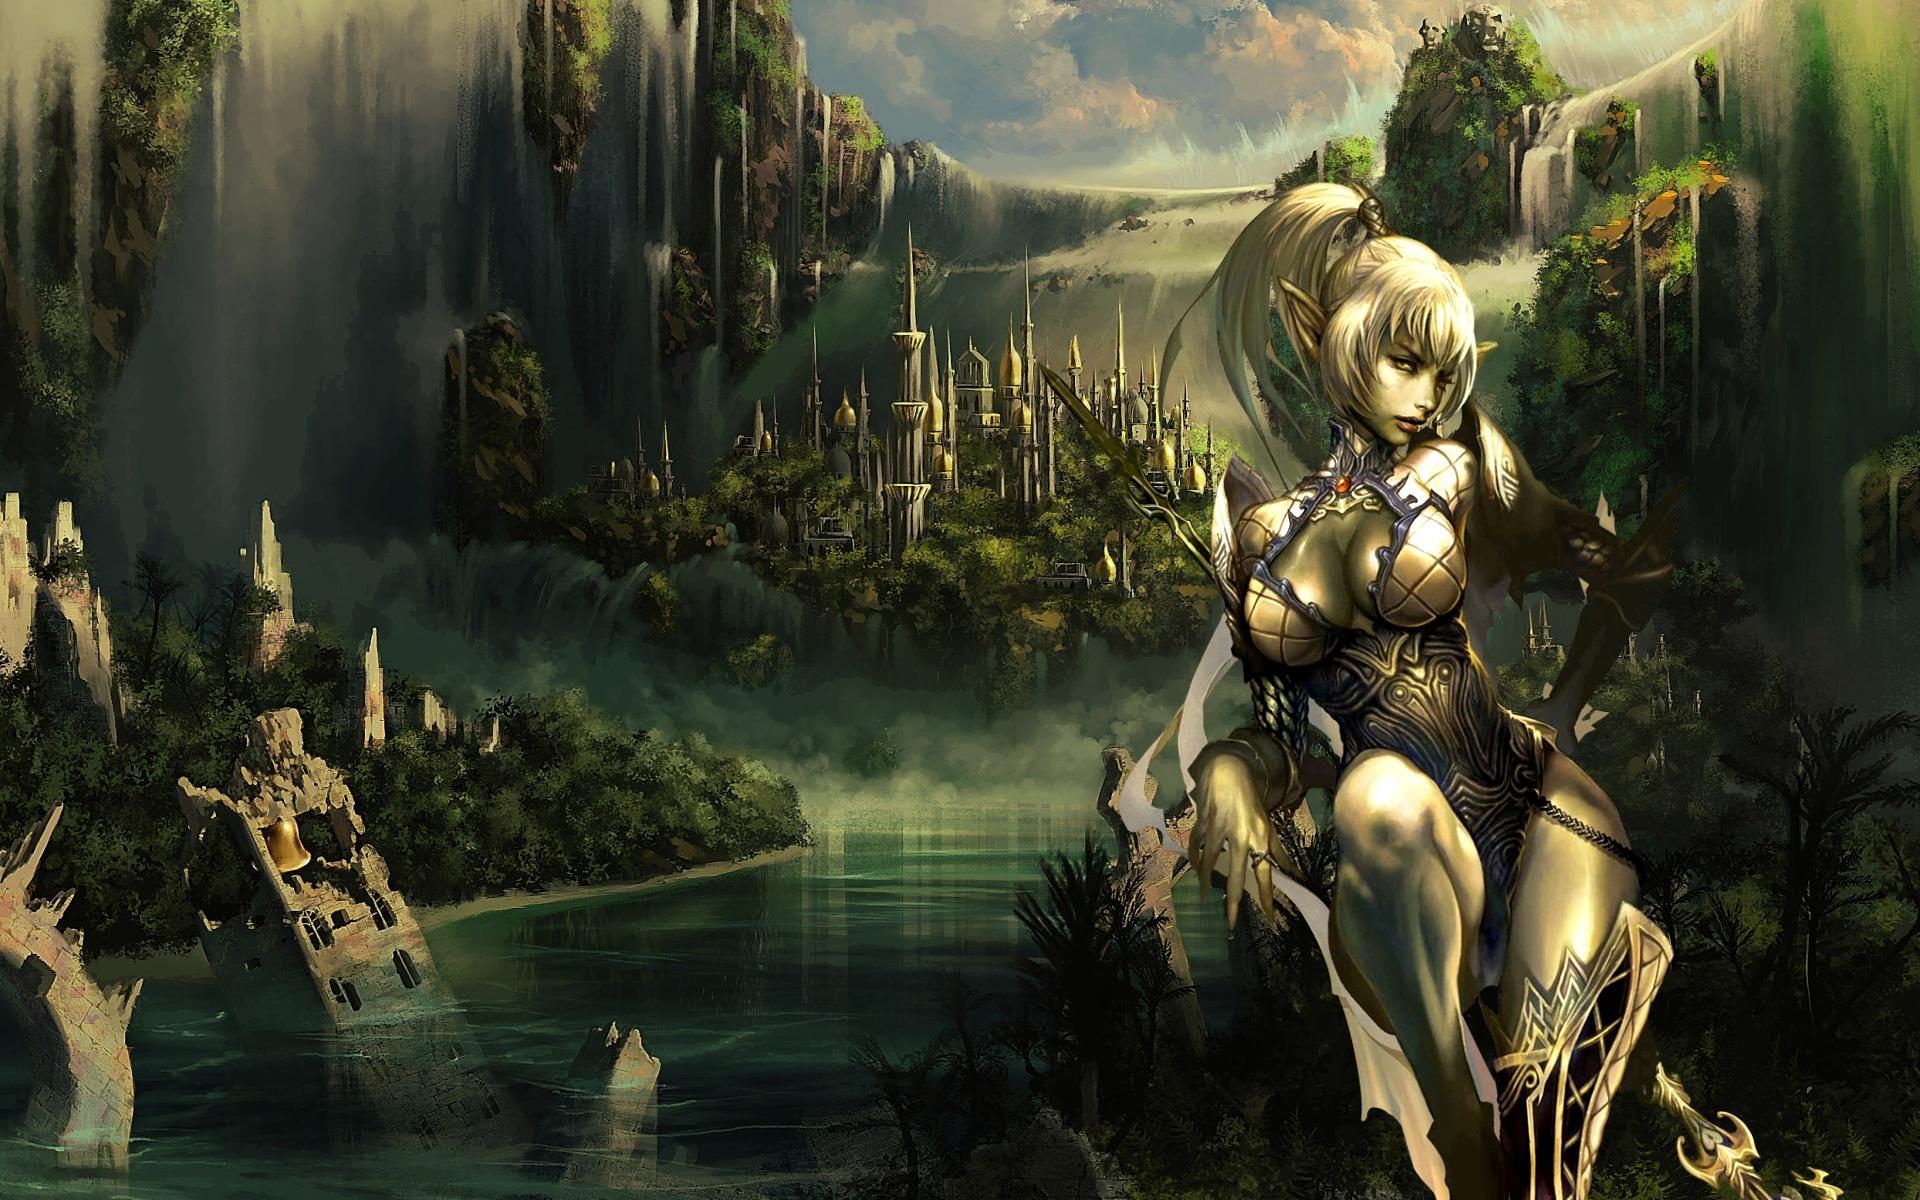 Archer Warrior Elves Fantasy Art Wallpapers Hd: Female Elves Wallpaper